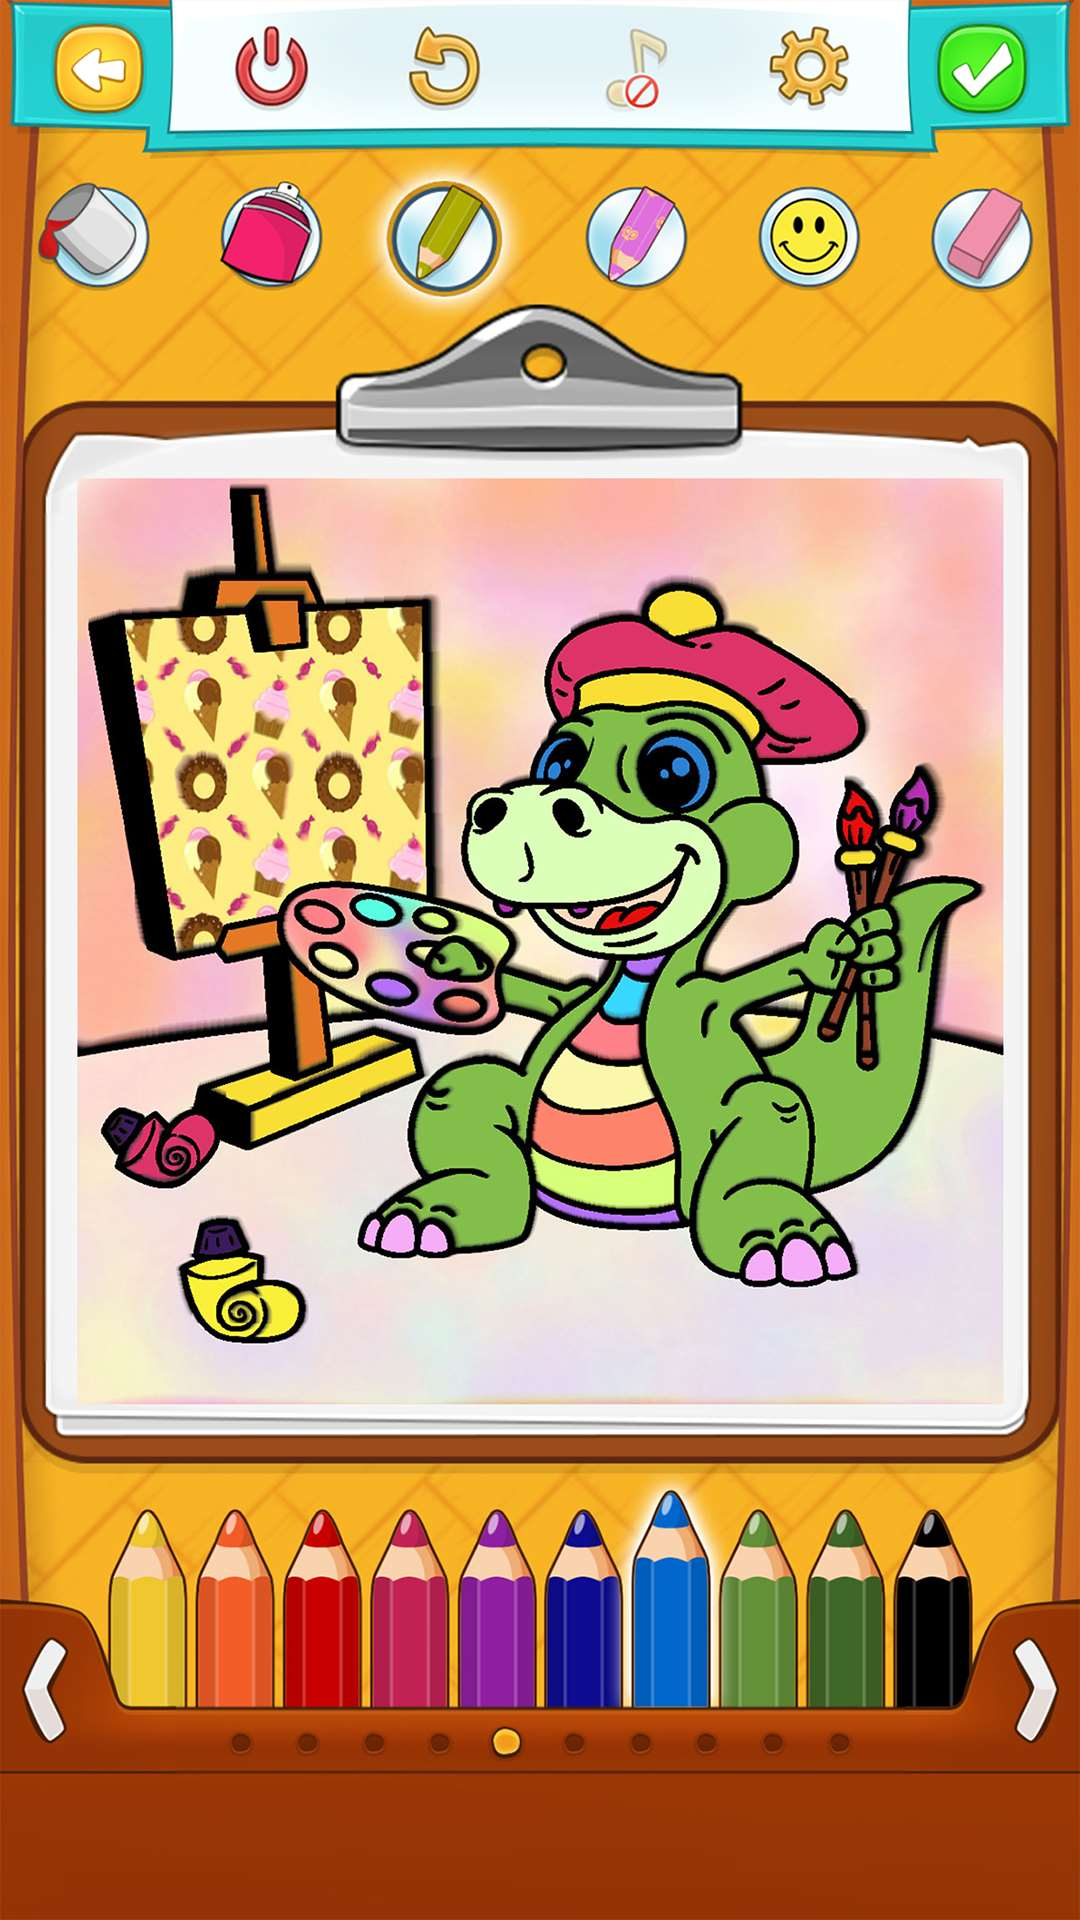 dinosaur coloring pages dinosaur coloring pages dinosaur coloring pages - Dinosaur Coloring Books